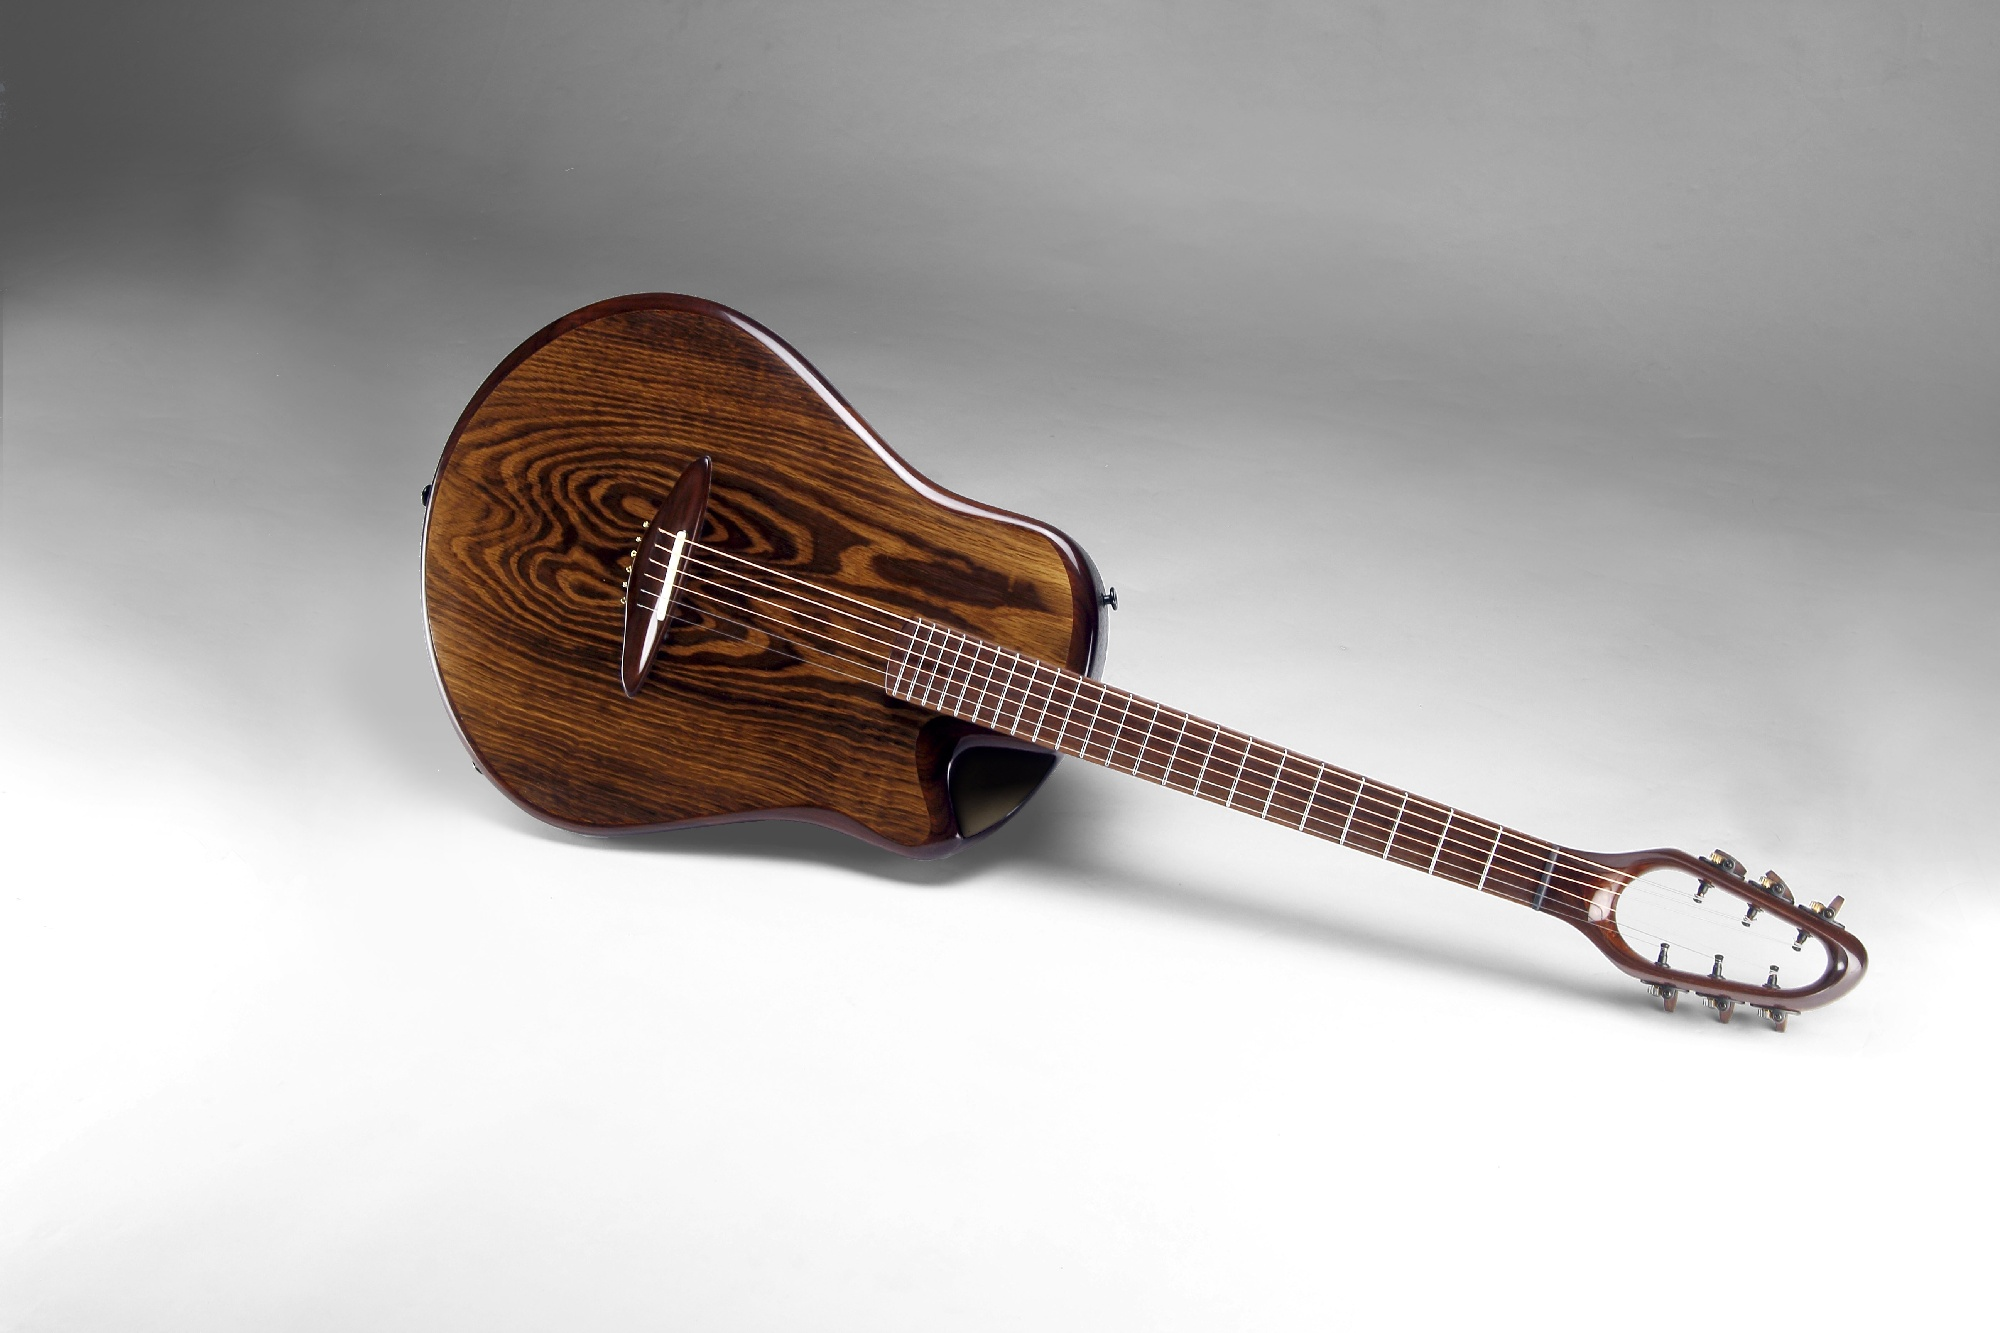 sonowood: sustainable wood for guitars